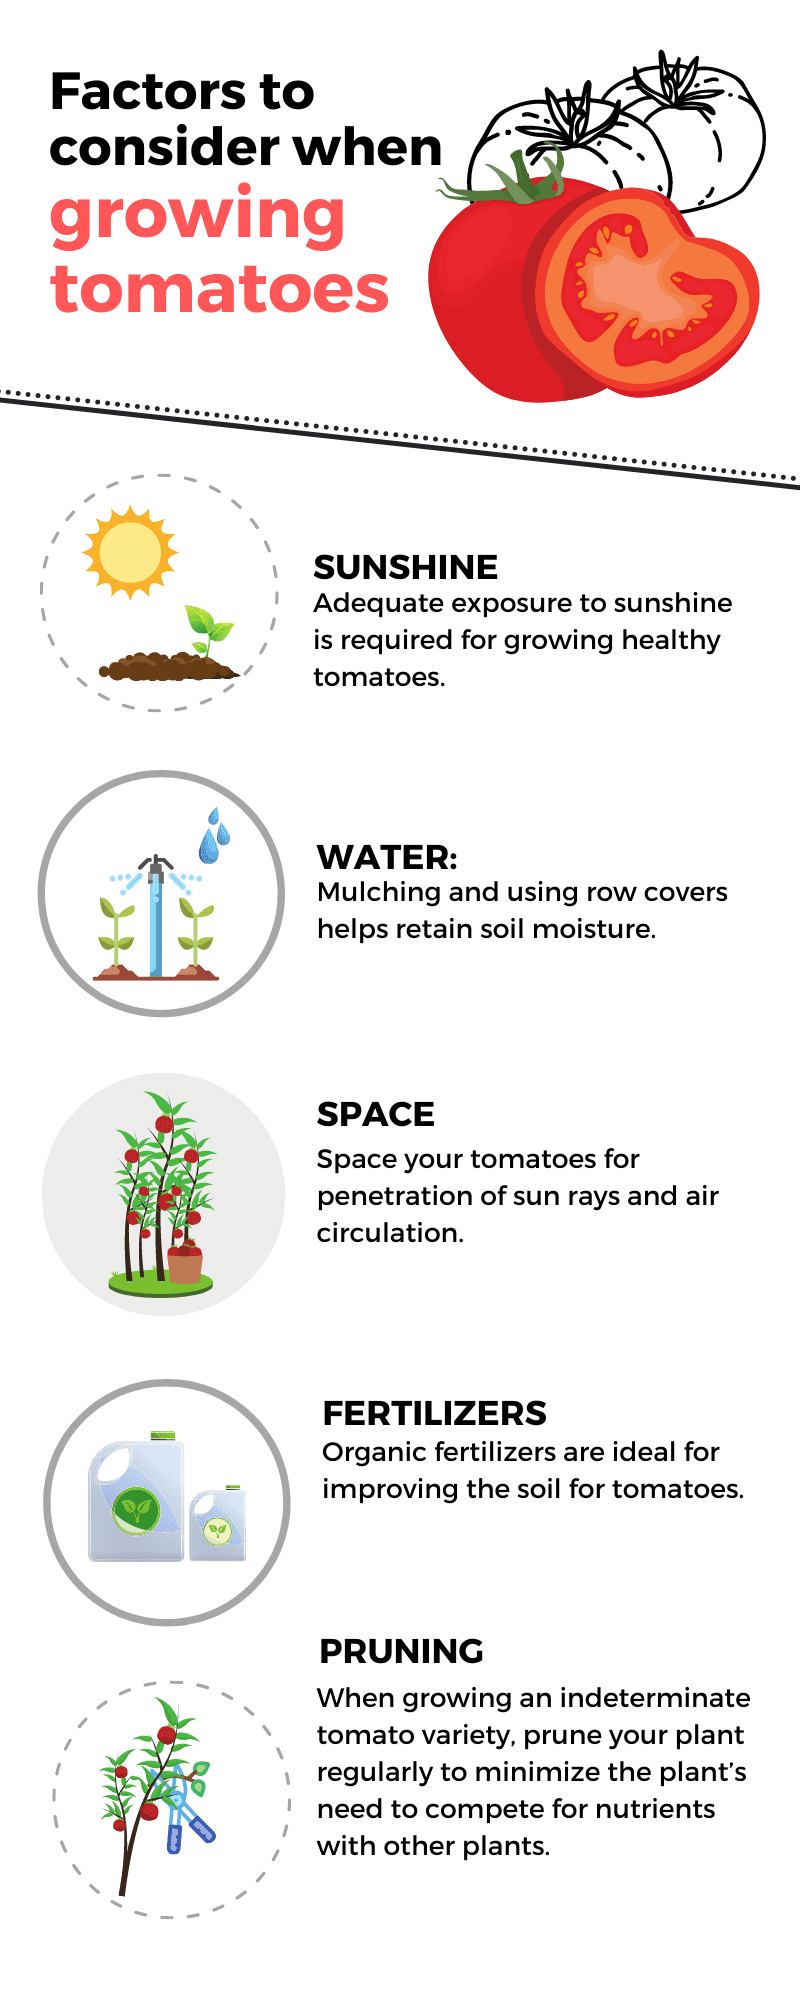 The Best Soil for Tomatoes infographic